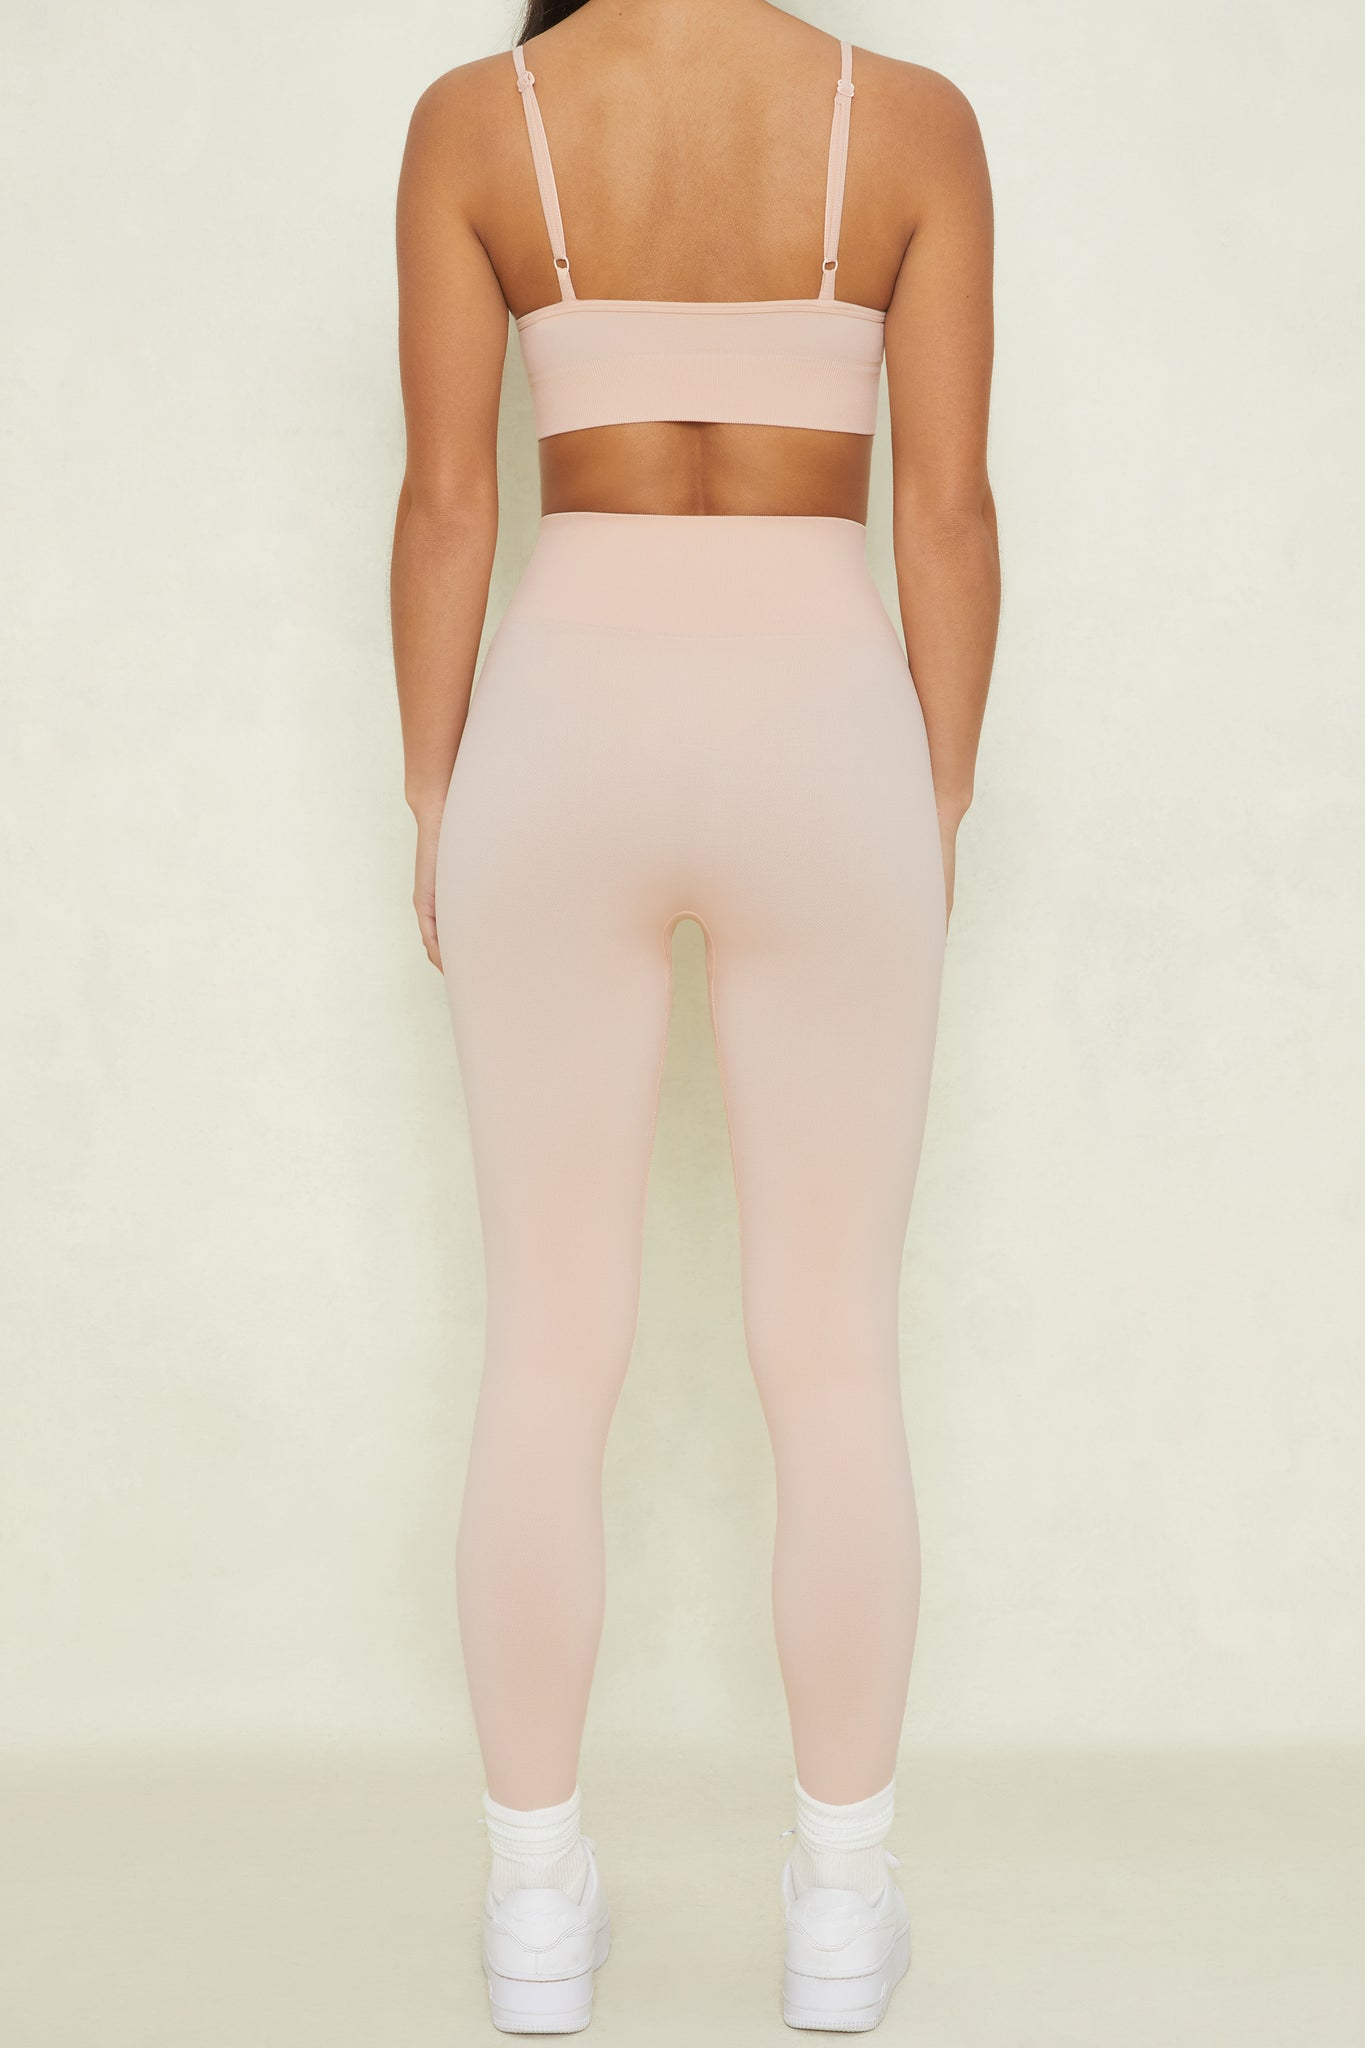 High Impact - Leggings in Blush